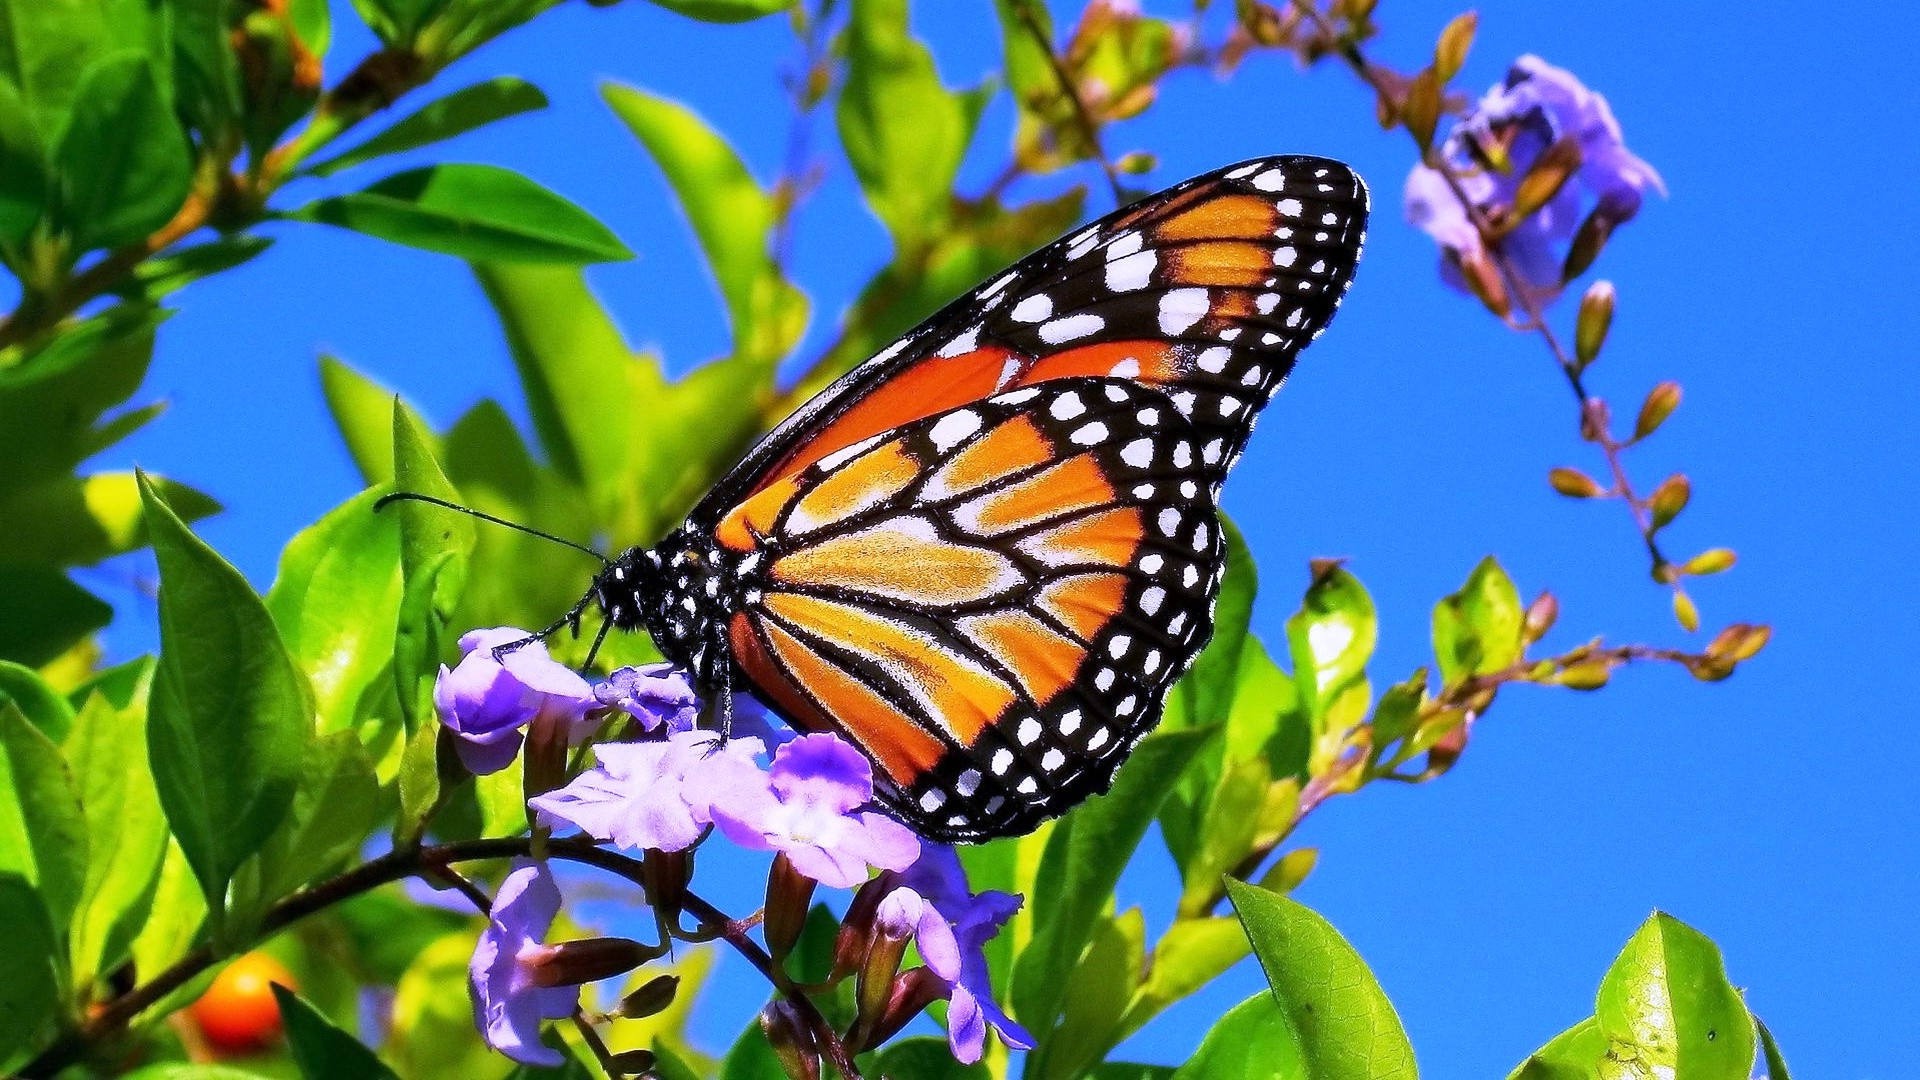 Butterfly On Flower Full HD Wallpaper And Background Image